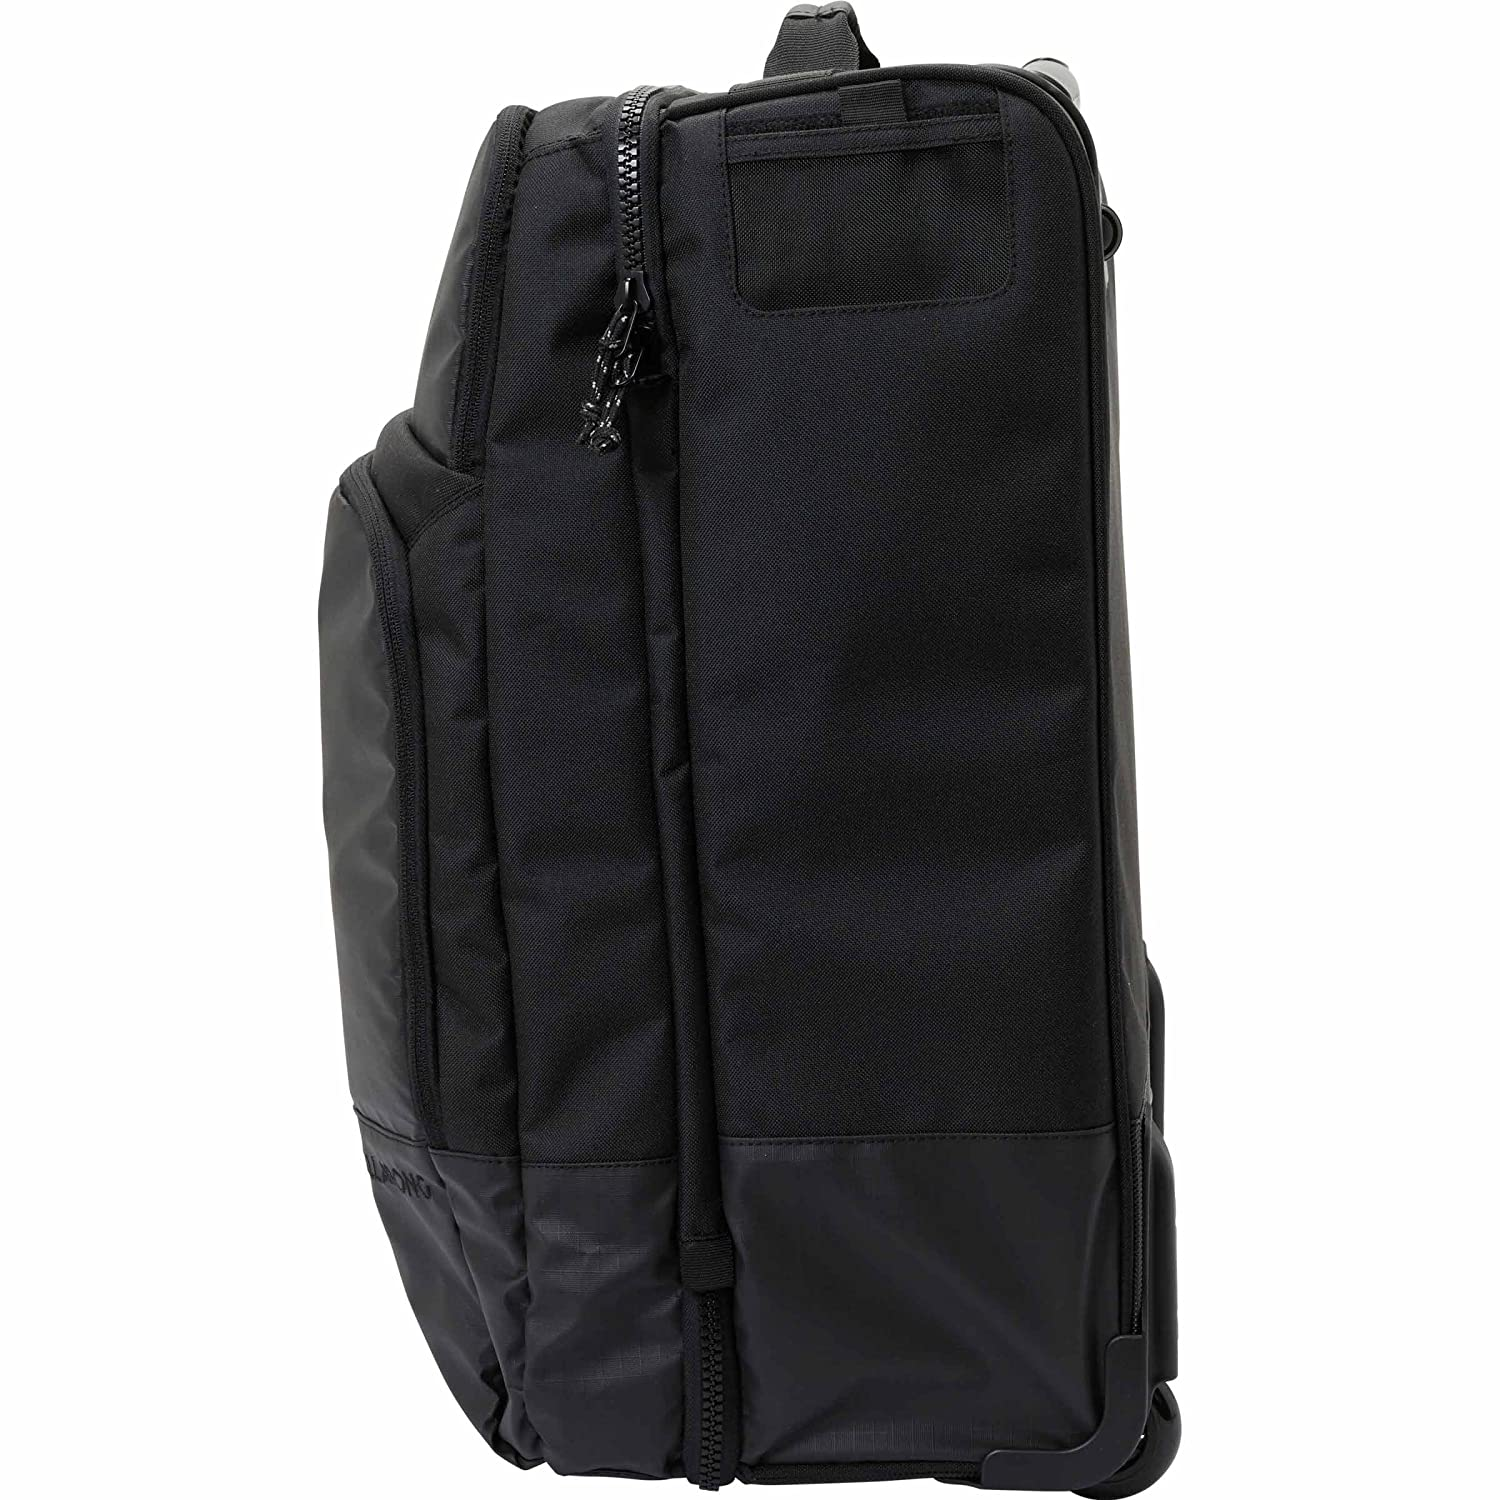 19d1d8eaa485 Amazon.com: Billabong Men's Booster Carry On Travel Bag Stealth One ...